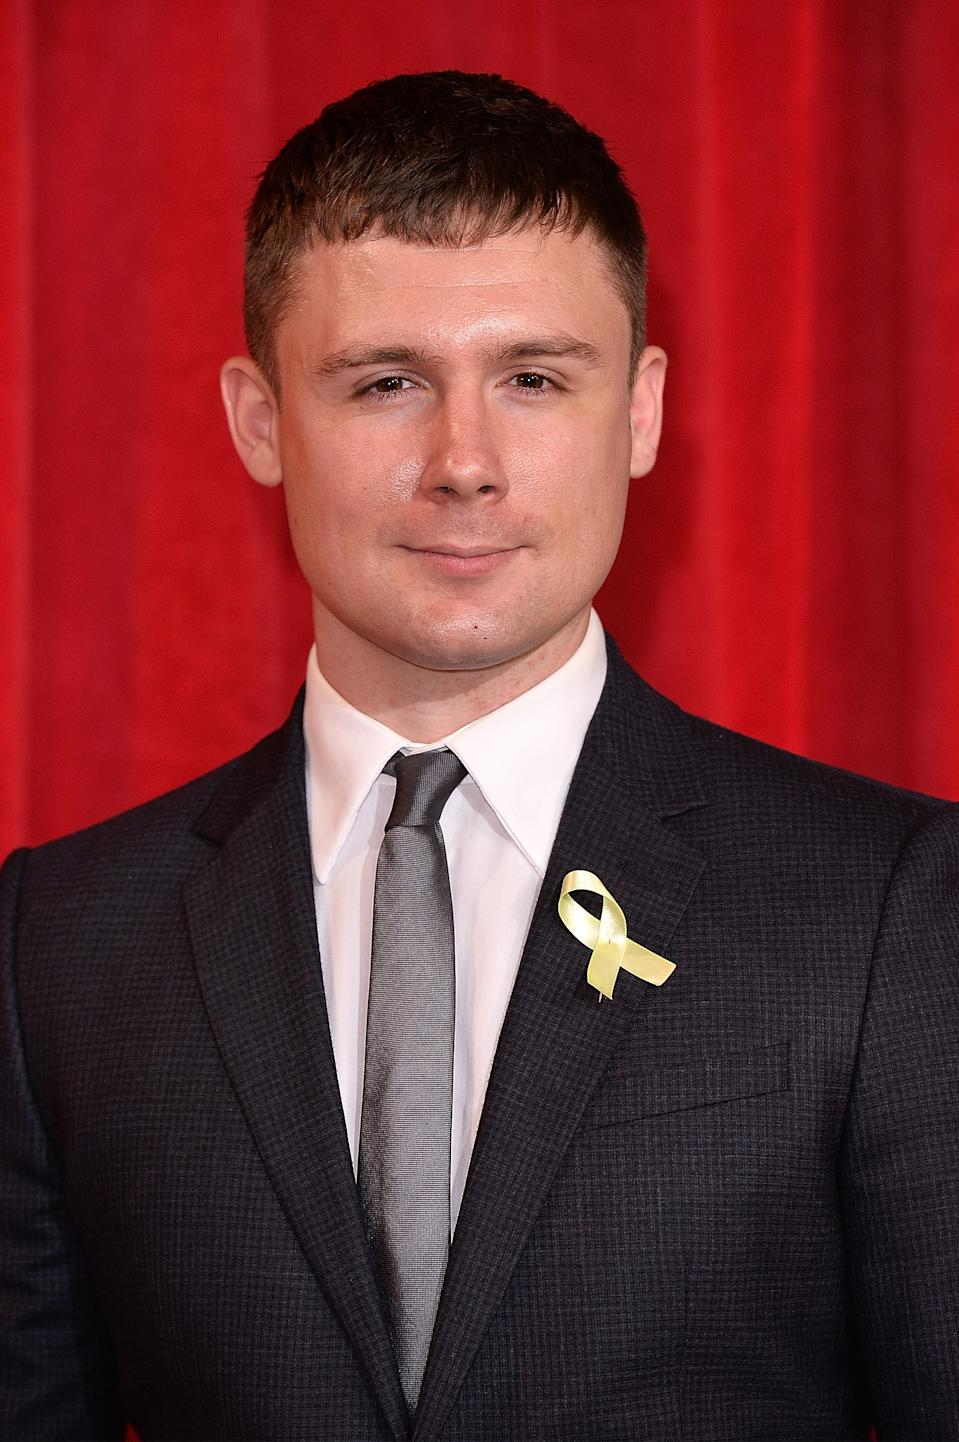 MANCHESTER, ENGLAND - JUNE 03:  Danny-Boy Hatchard attends The British Soap Awards at The Lowry Theatre on June 3, 2017 in Manchester, England. The Soap Awards will be aired on June 6 on ITV at 8pm.  (Photo by Jeff Spicer/Getty Images)